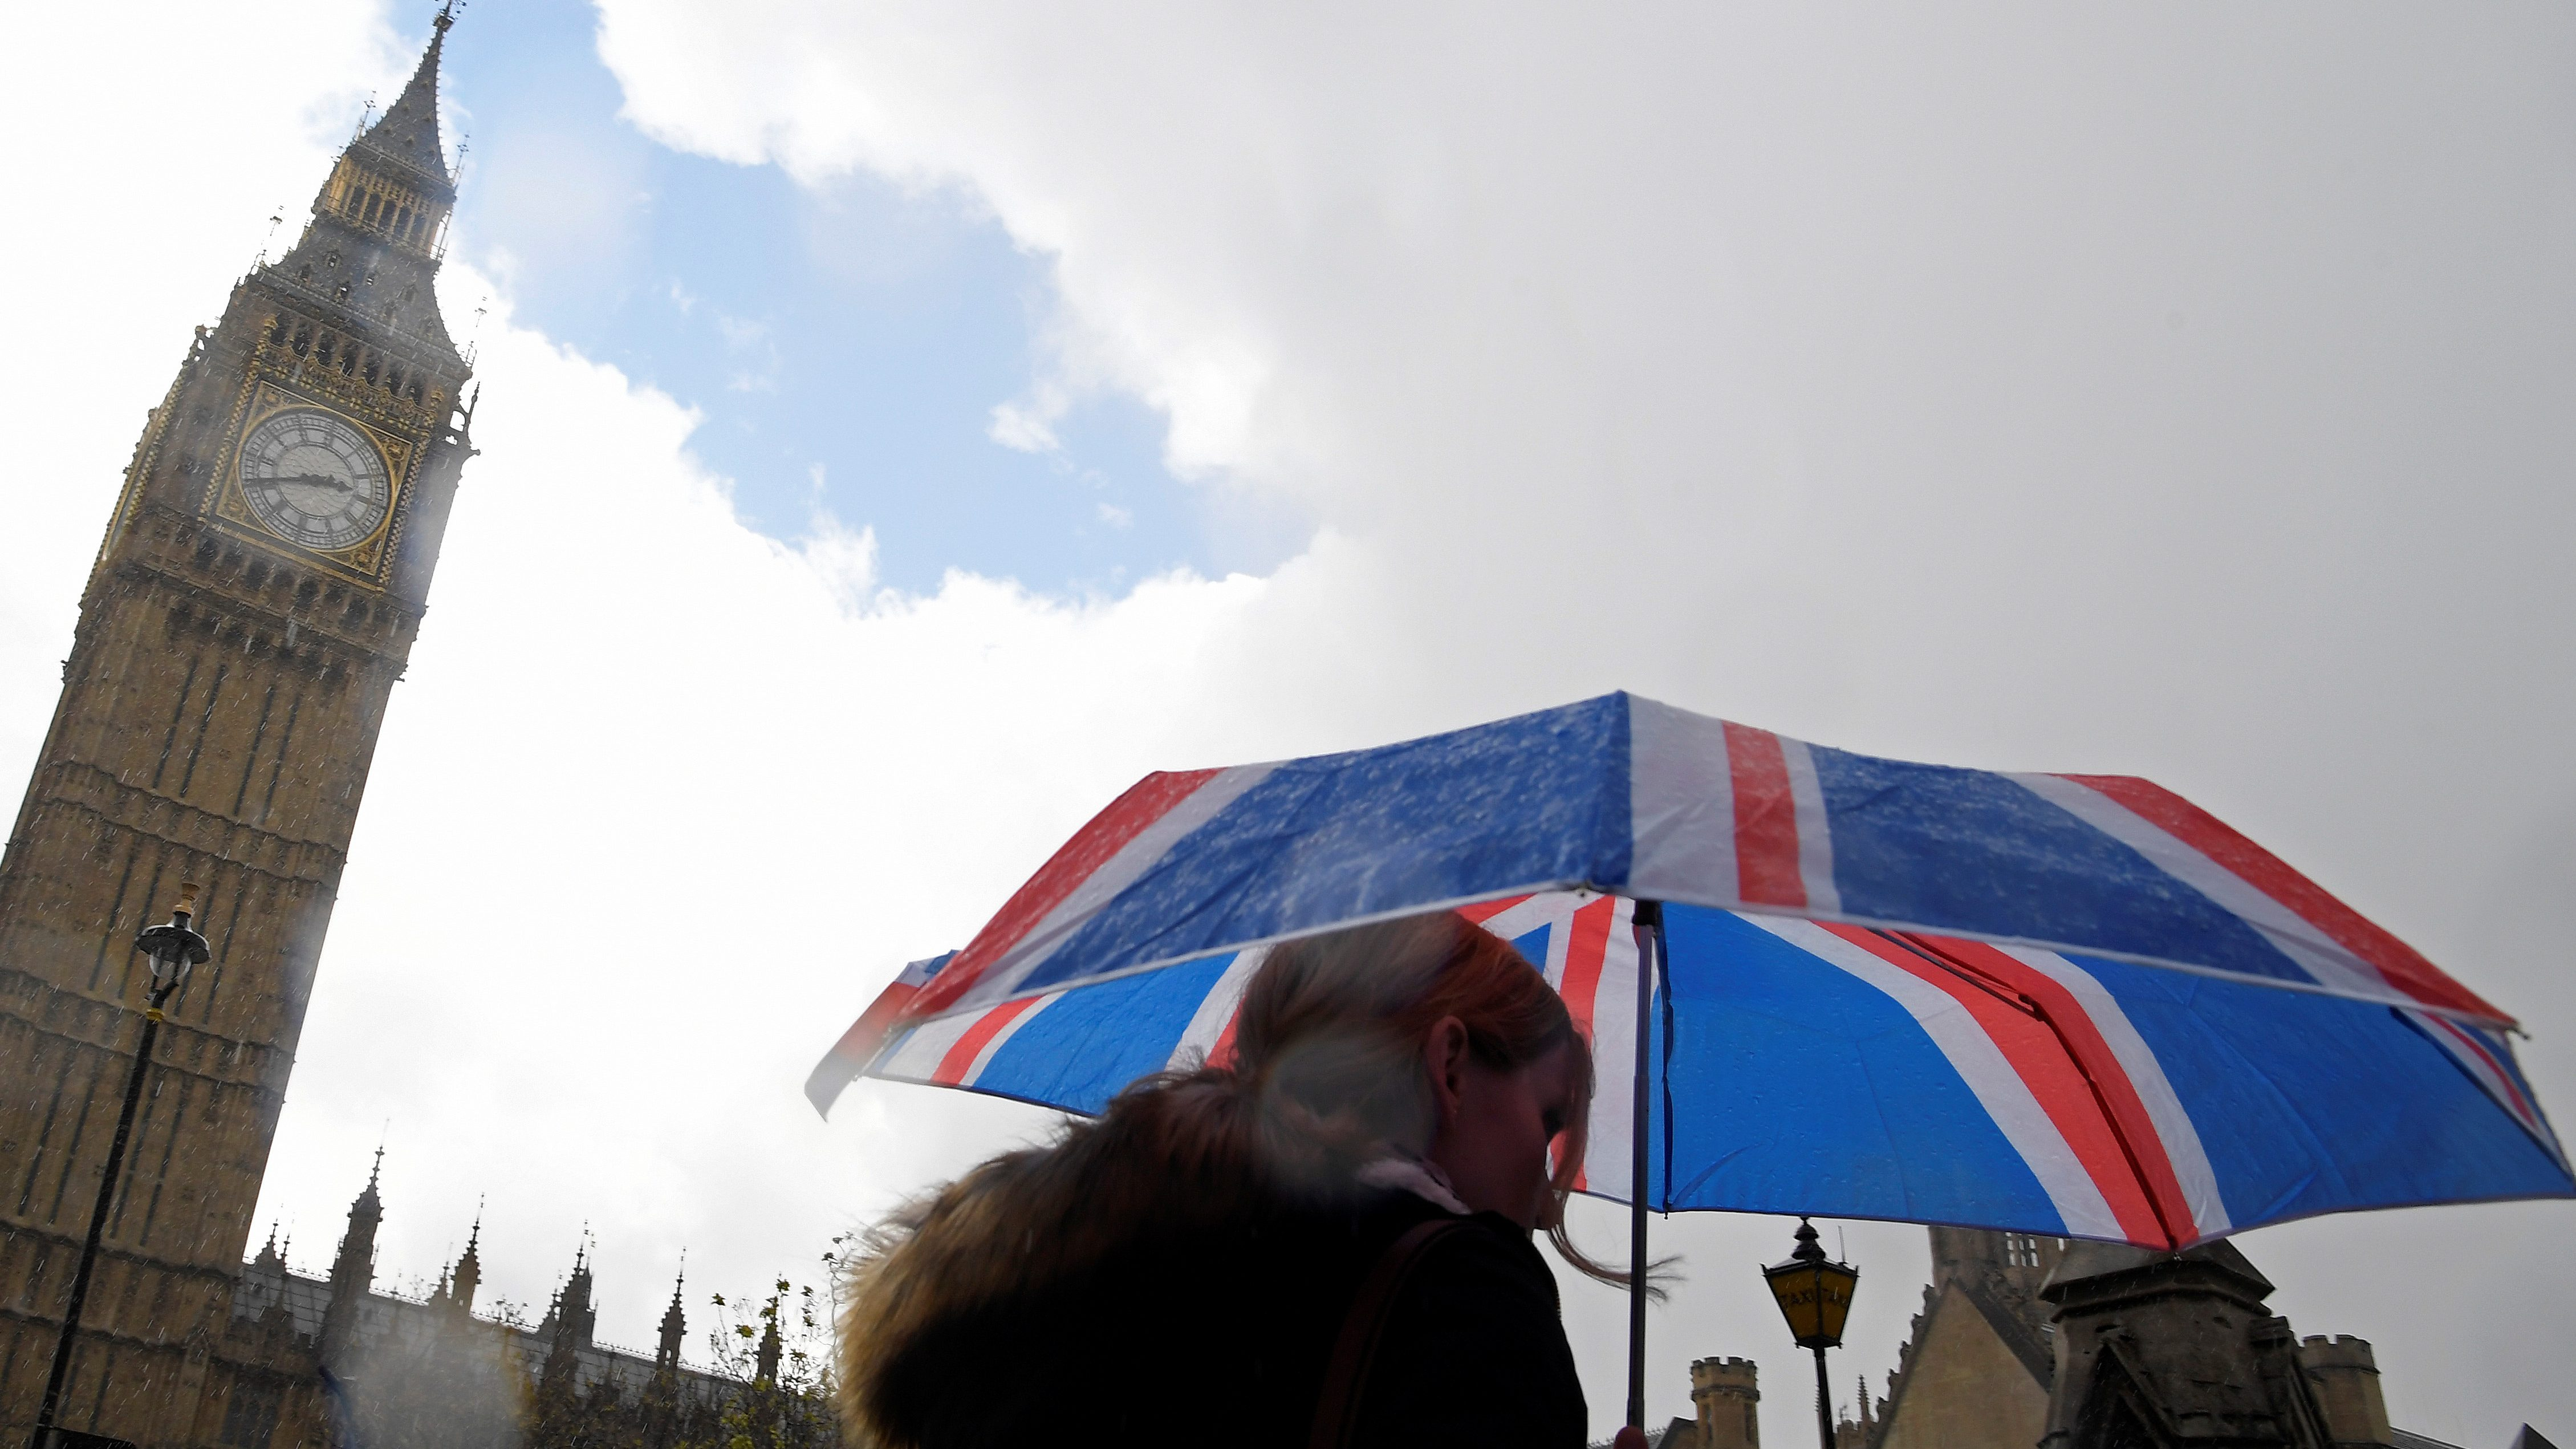 A woman carries a British union flag design umbrella as she walks past the Houses of Parliament in London, Britain, April 26, 2017.